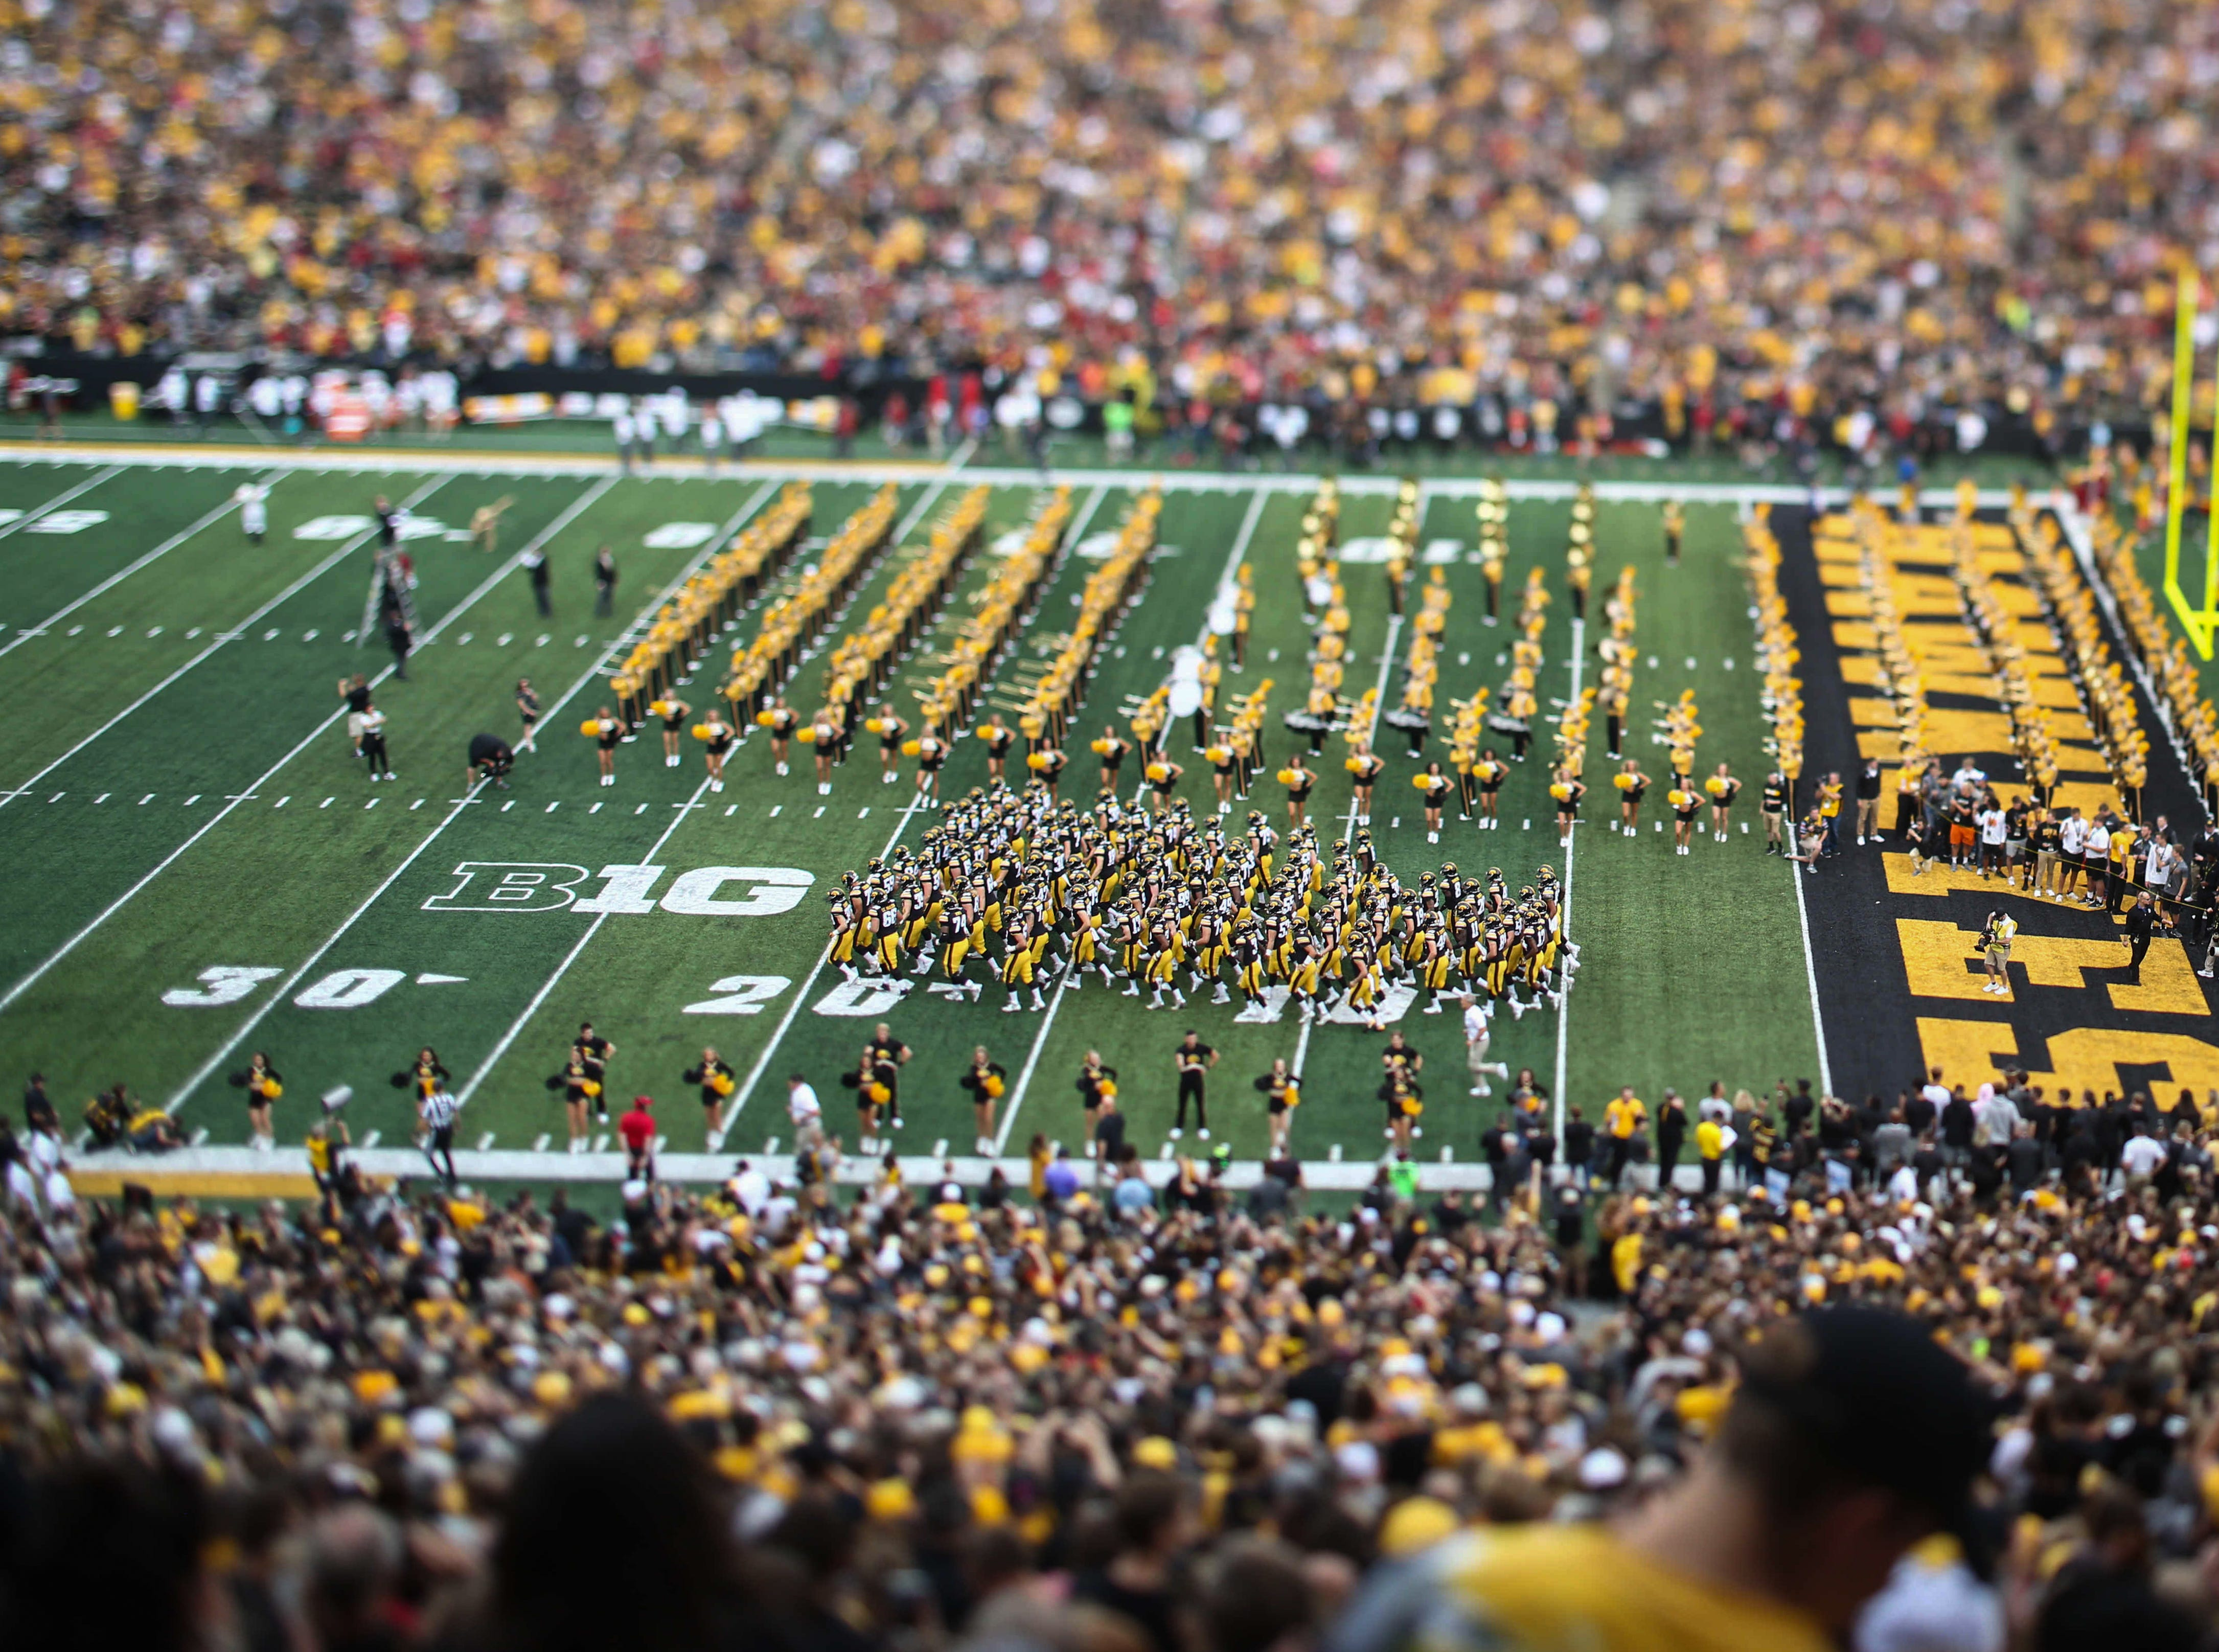 Members of the Iowa Hawkeyes football team take the field prior to kickoff against Iowa State on Saturday, Sept. 8 2018, at Kinnick Stadium in Iowa City.